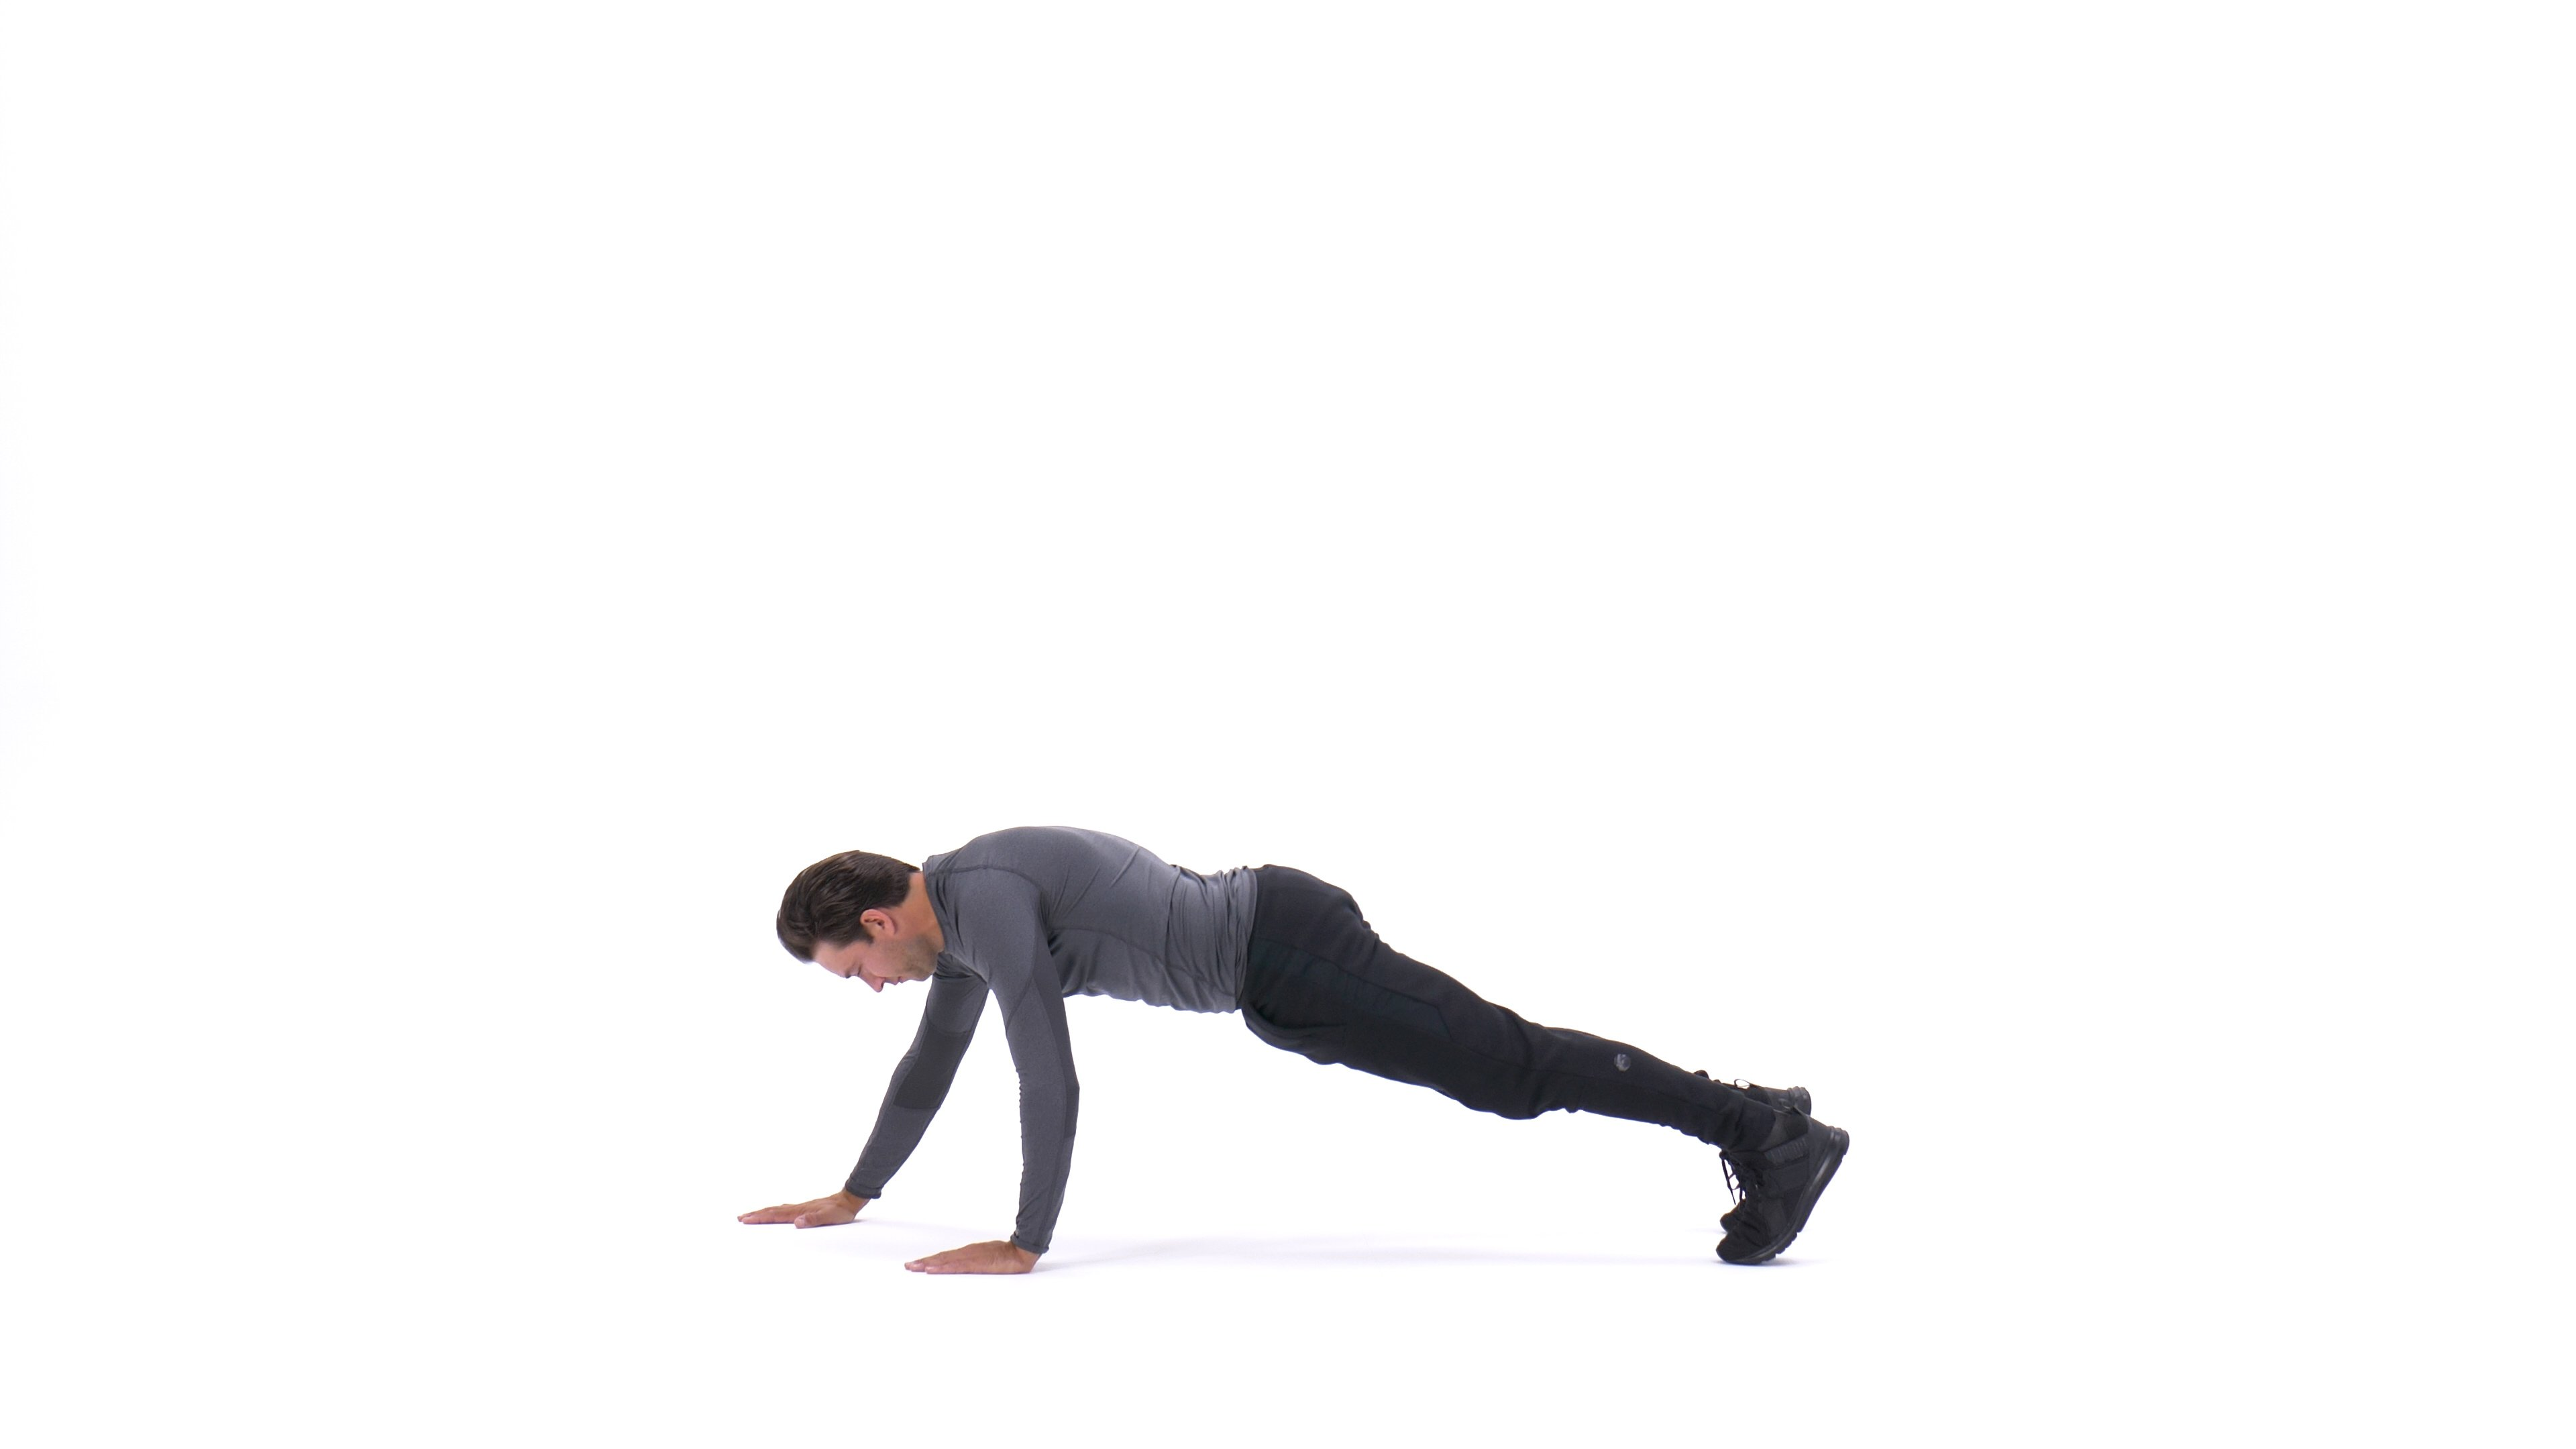 Staggered push-up image